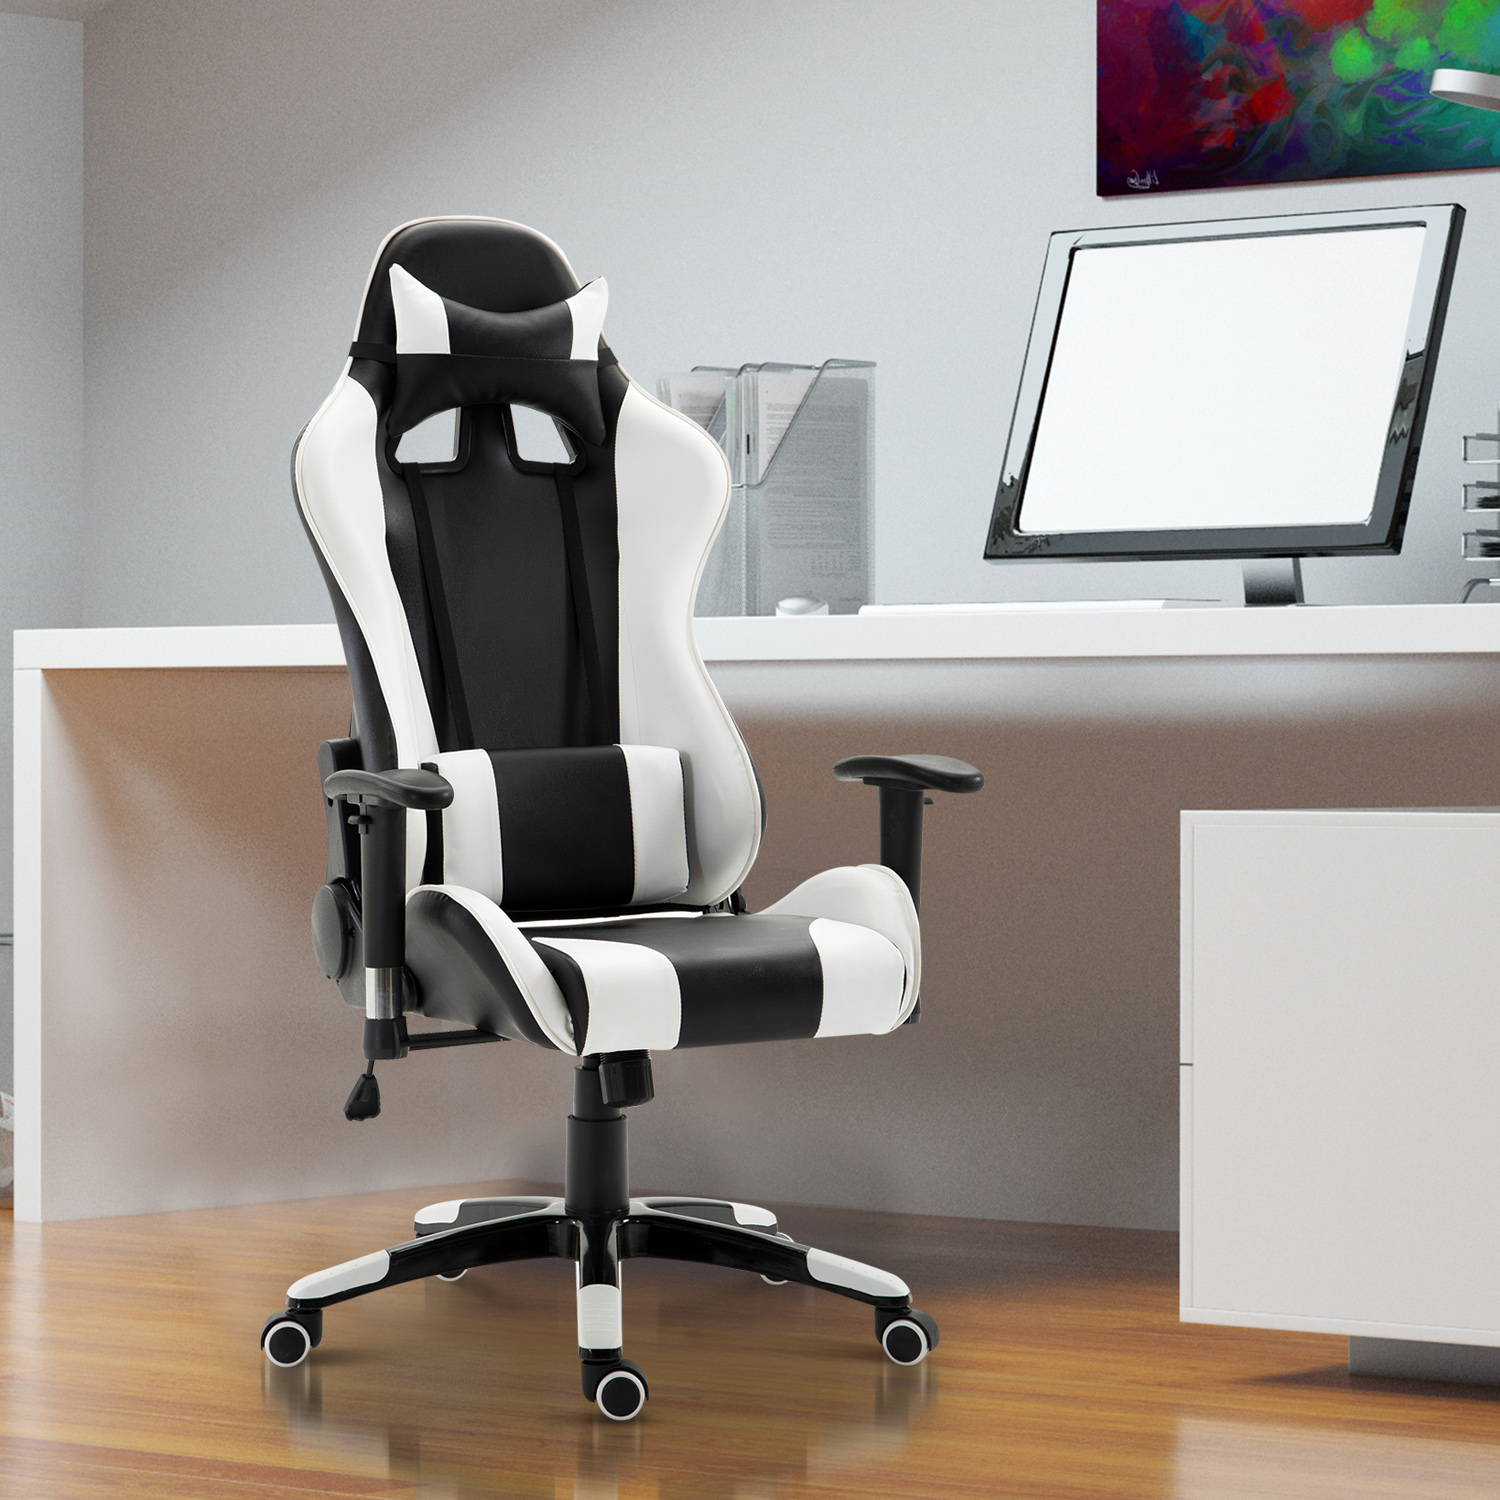 CAD 18699 HOMCOM Executive Racecar Style Office Chair Gaming Recliner Swivel Adjustable PU Padded Home White Styled Reclining Seat Canada 95509791573